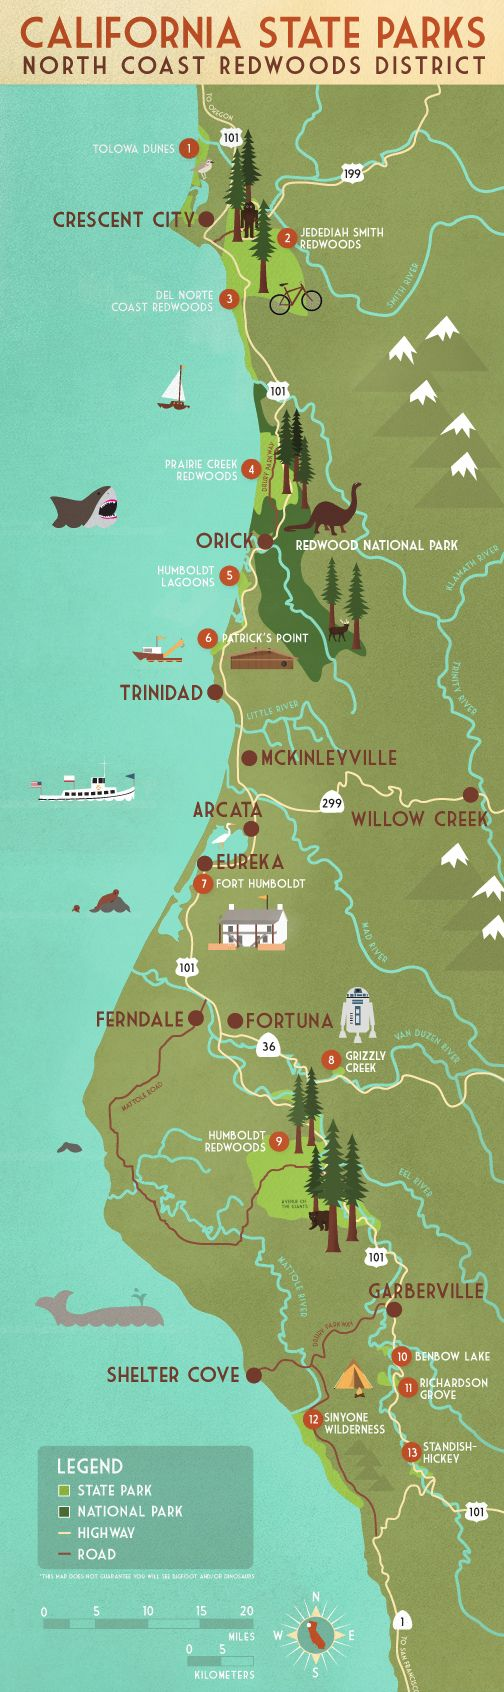 North Coast CA State Parks map and